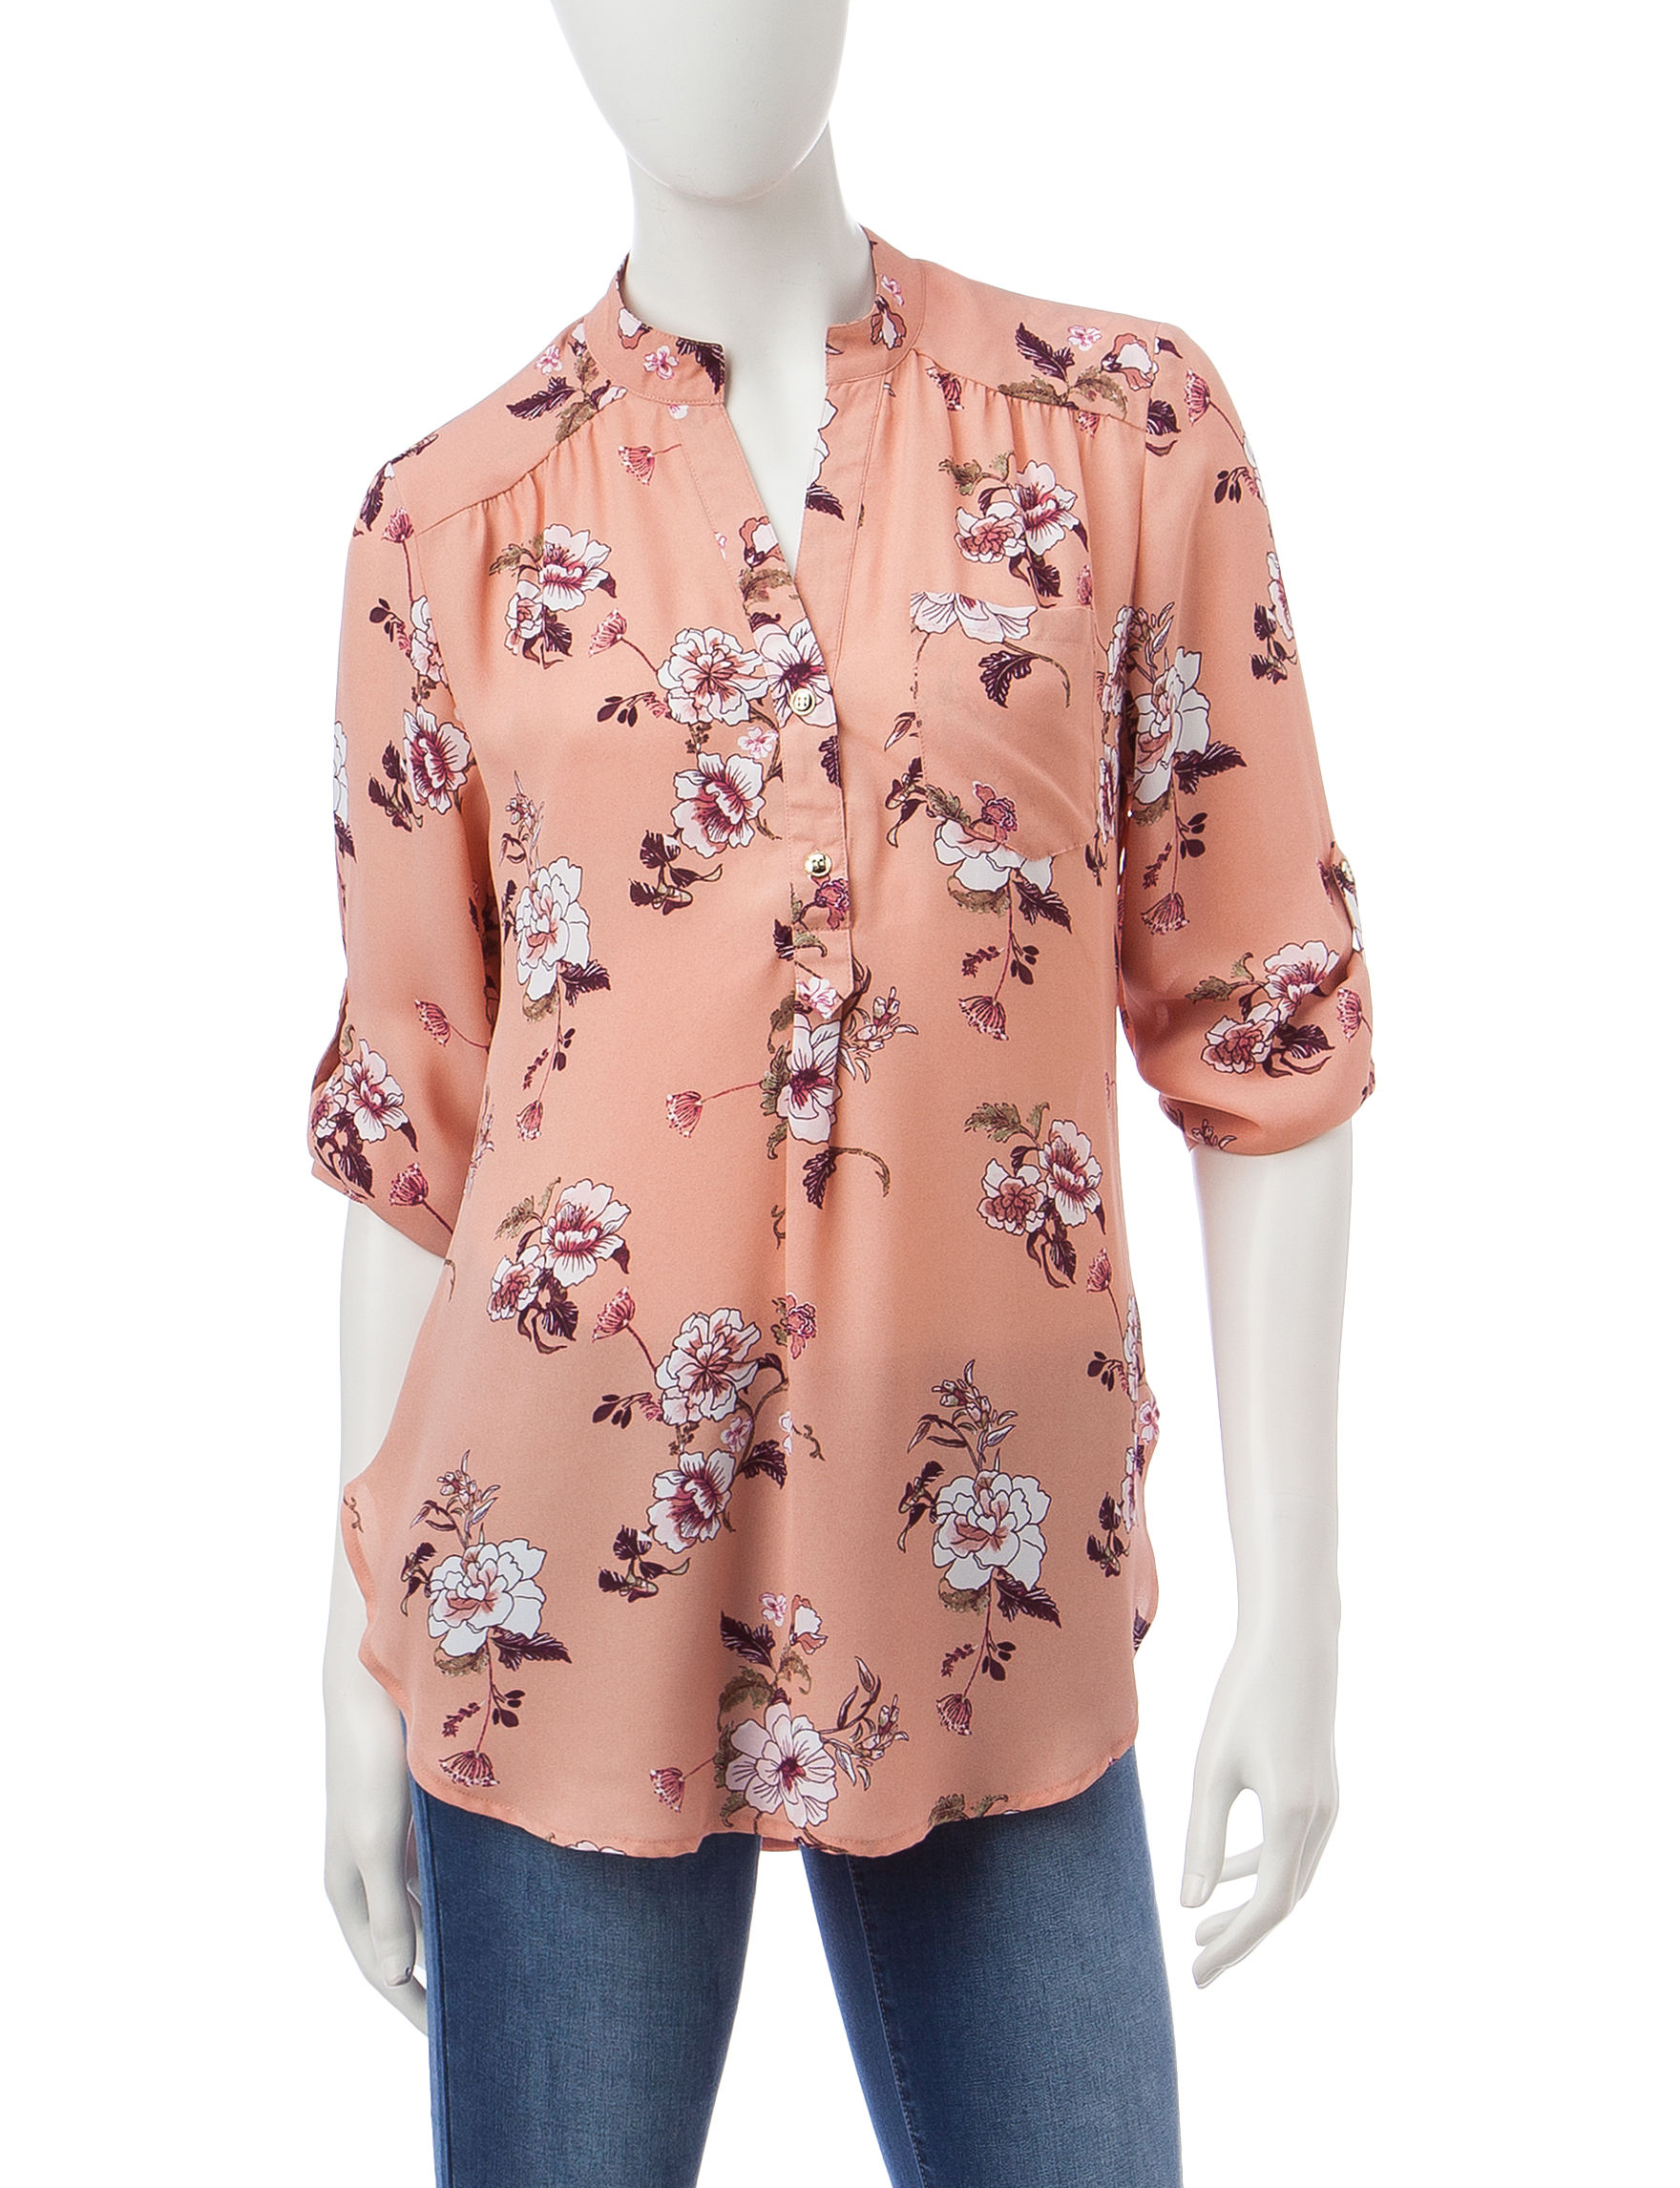 Wishful Park Pink Shirts & Blouses